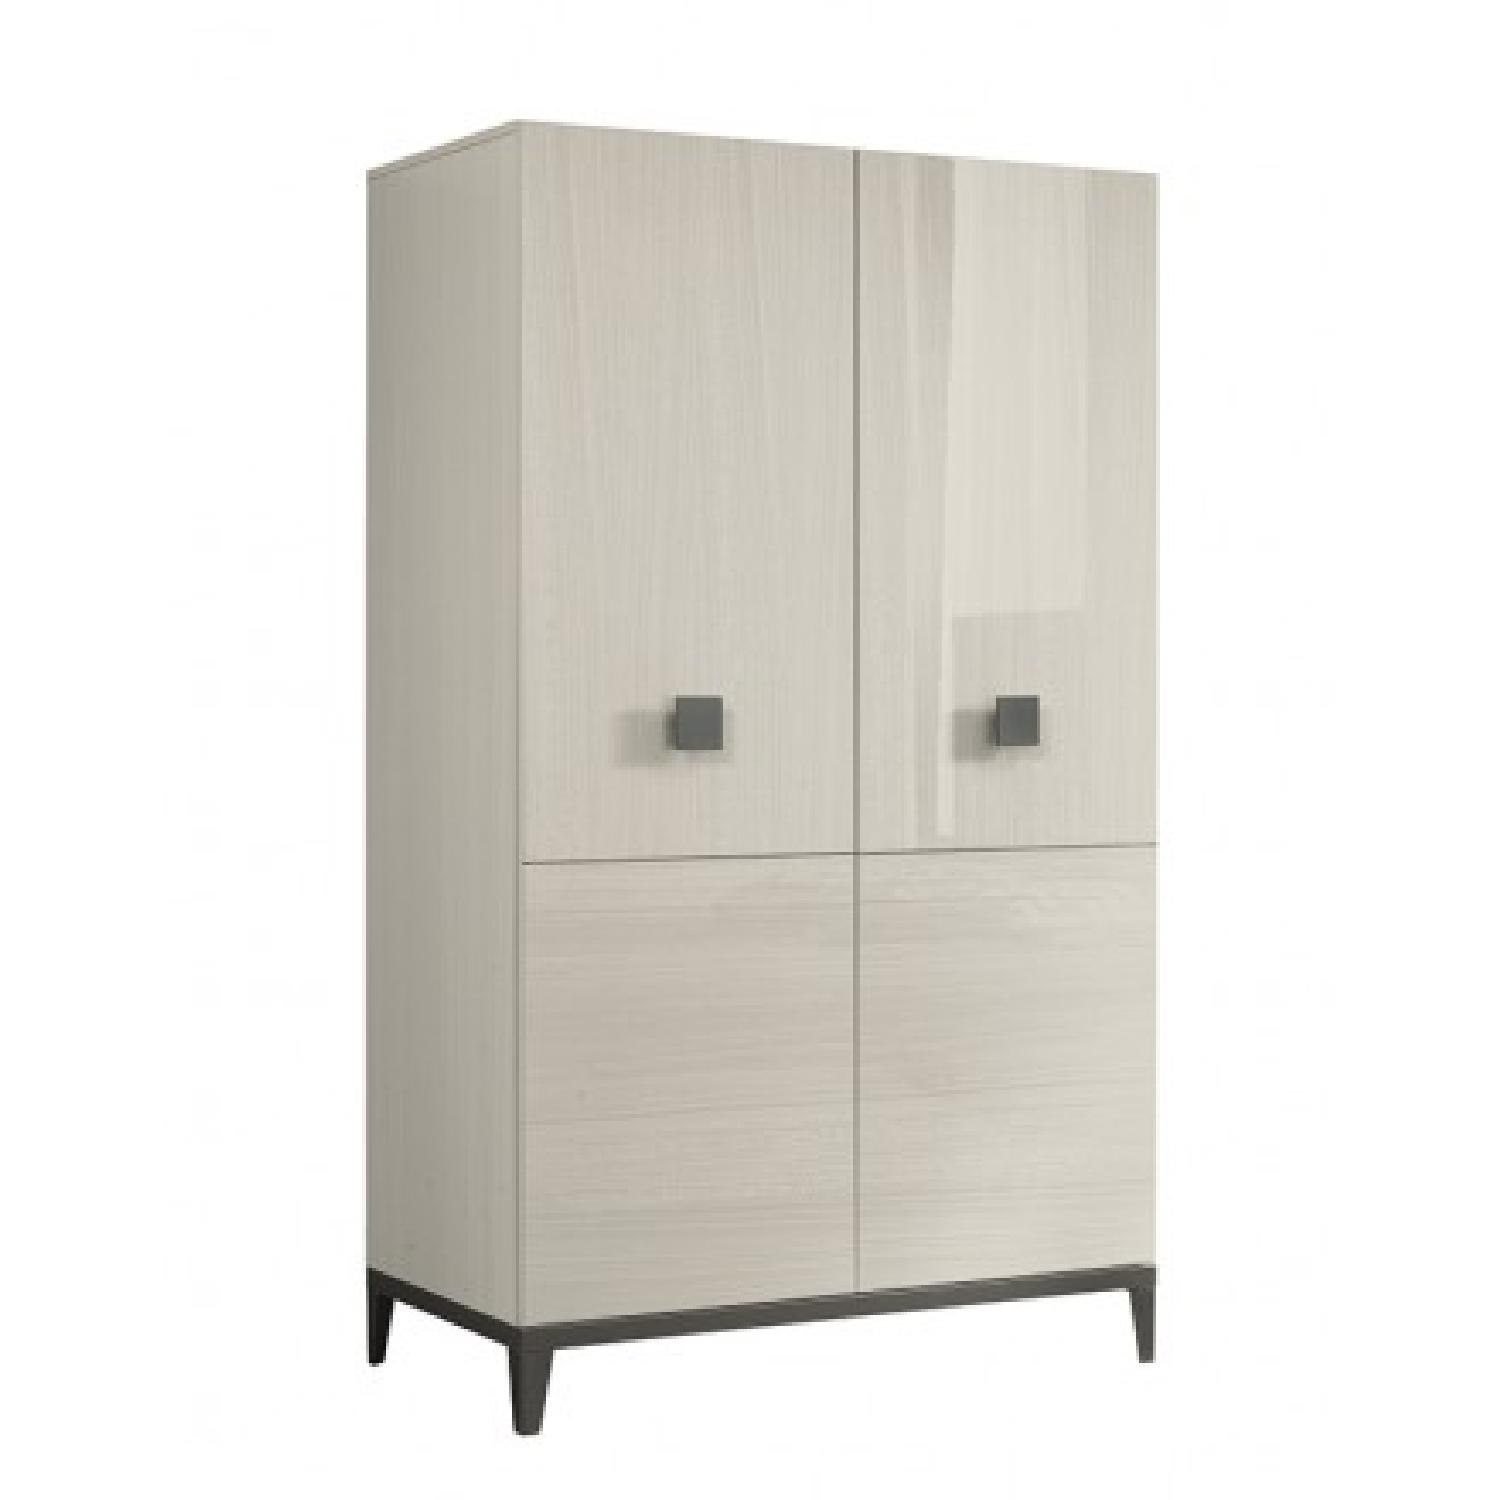 ALF Italia Mont Blanc Collection 2 Swinging Door Wardrobe